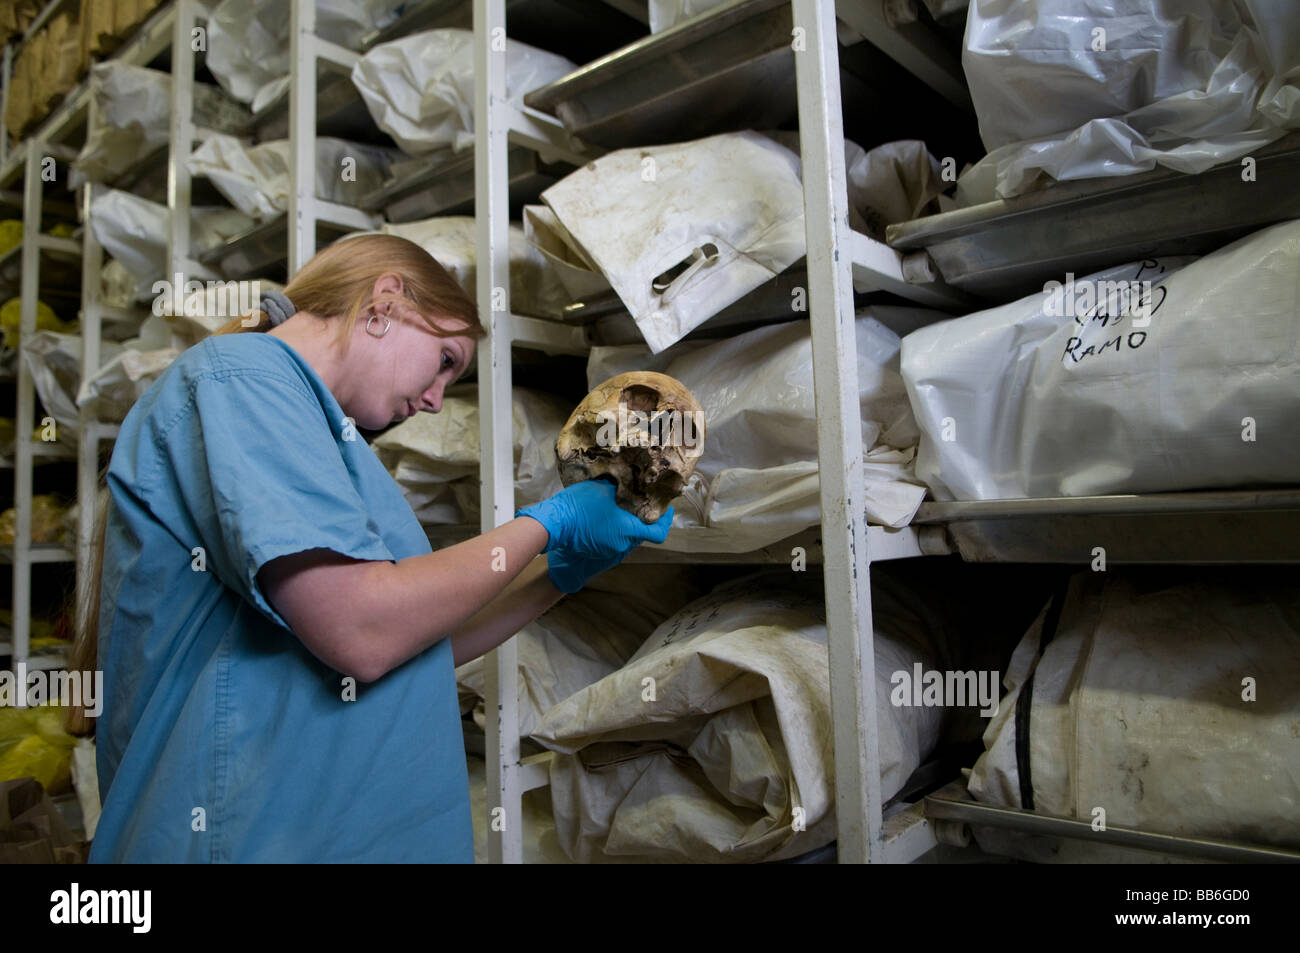 Forensic archaeologist examining a human skull at the mortuary facility of ICMP commission of missing persons in - Stock Image